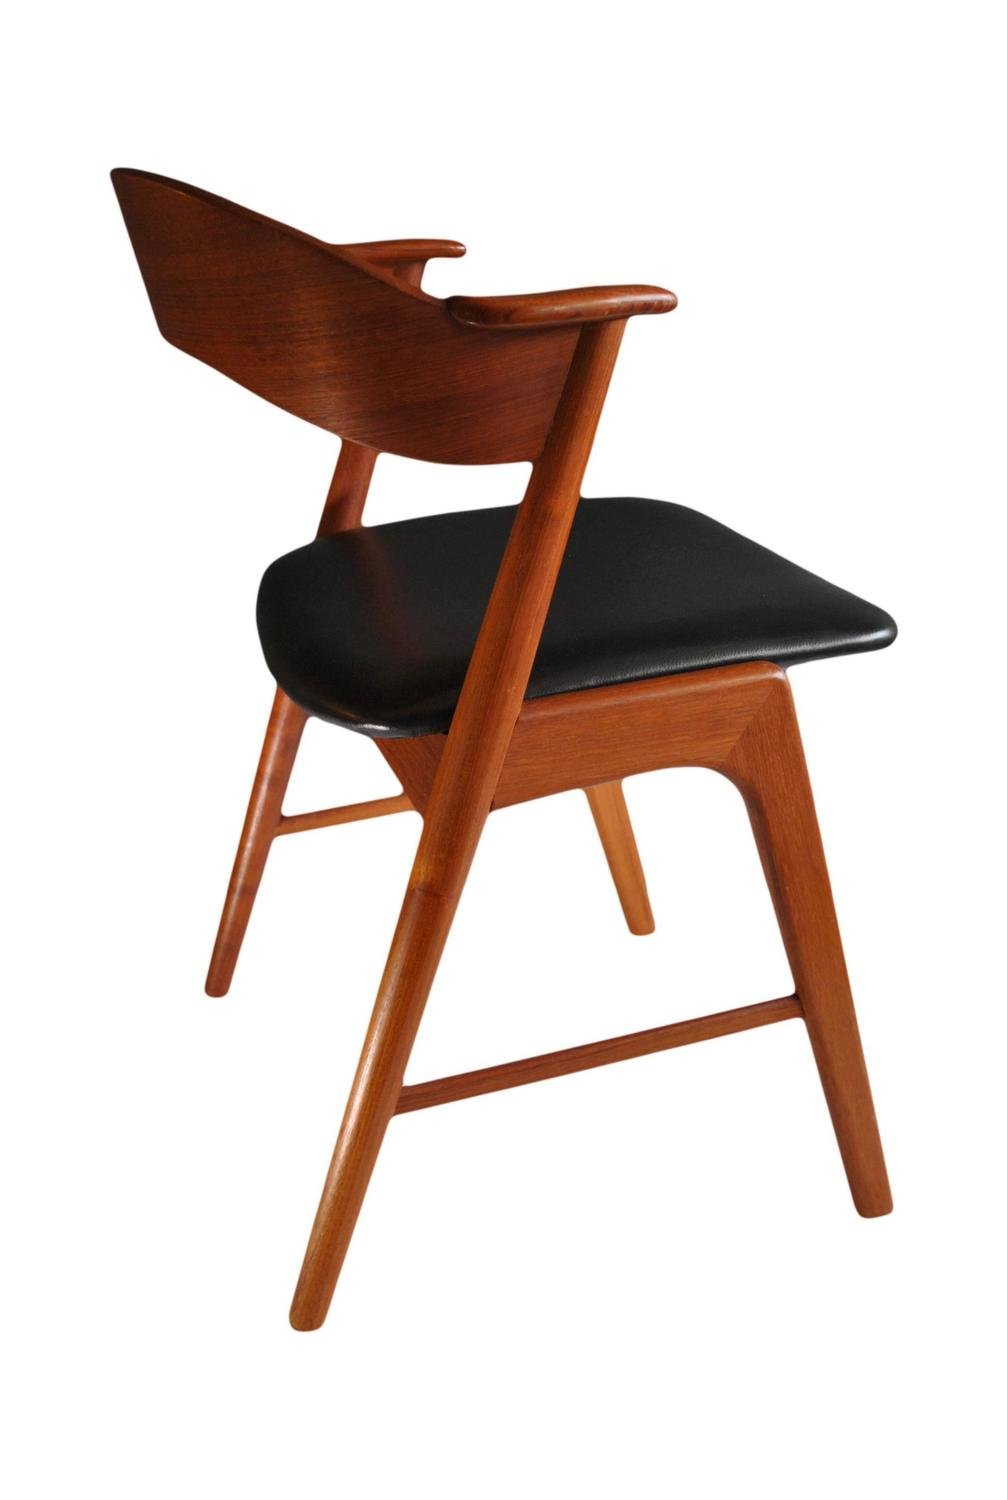 Kai kristiansen teak and leather dining chairs set of 10 at 1stdibs - Kai kristiansen chairs ...